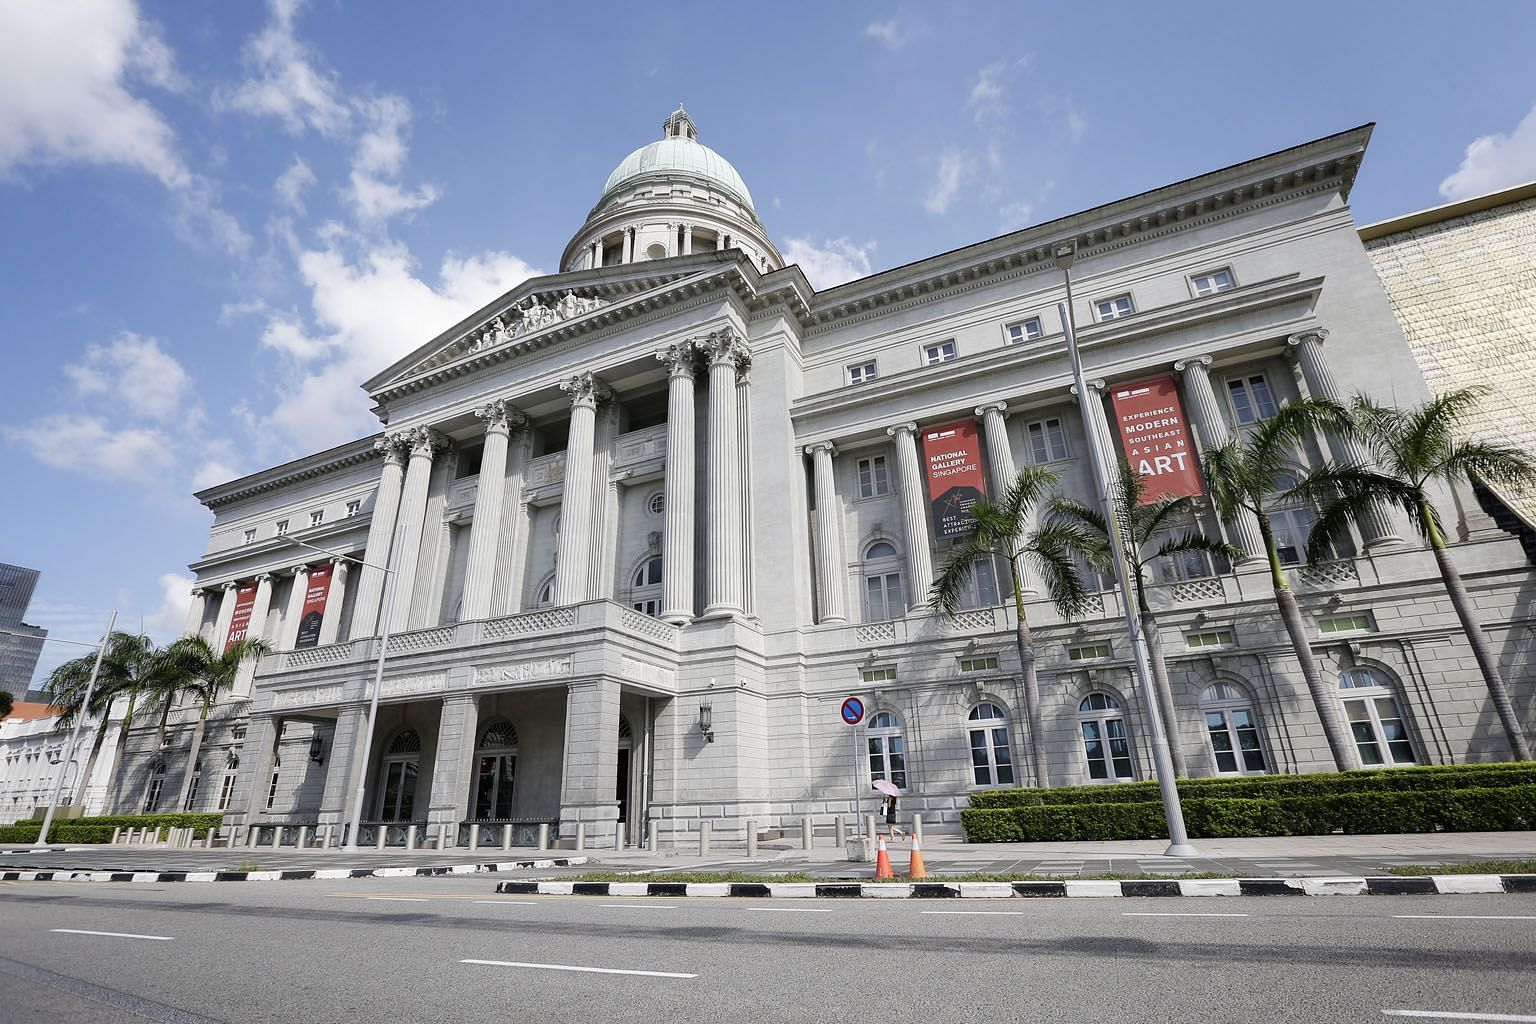 The former Supreme Court building's 78-year-old edifice, designed by Frank Dorrington Ward, features imposing Corinthian and Ionic columns, a 65m-tall copper-clad dome, and a tympanum featuring the allegory of justice. The court has seen the highest-